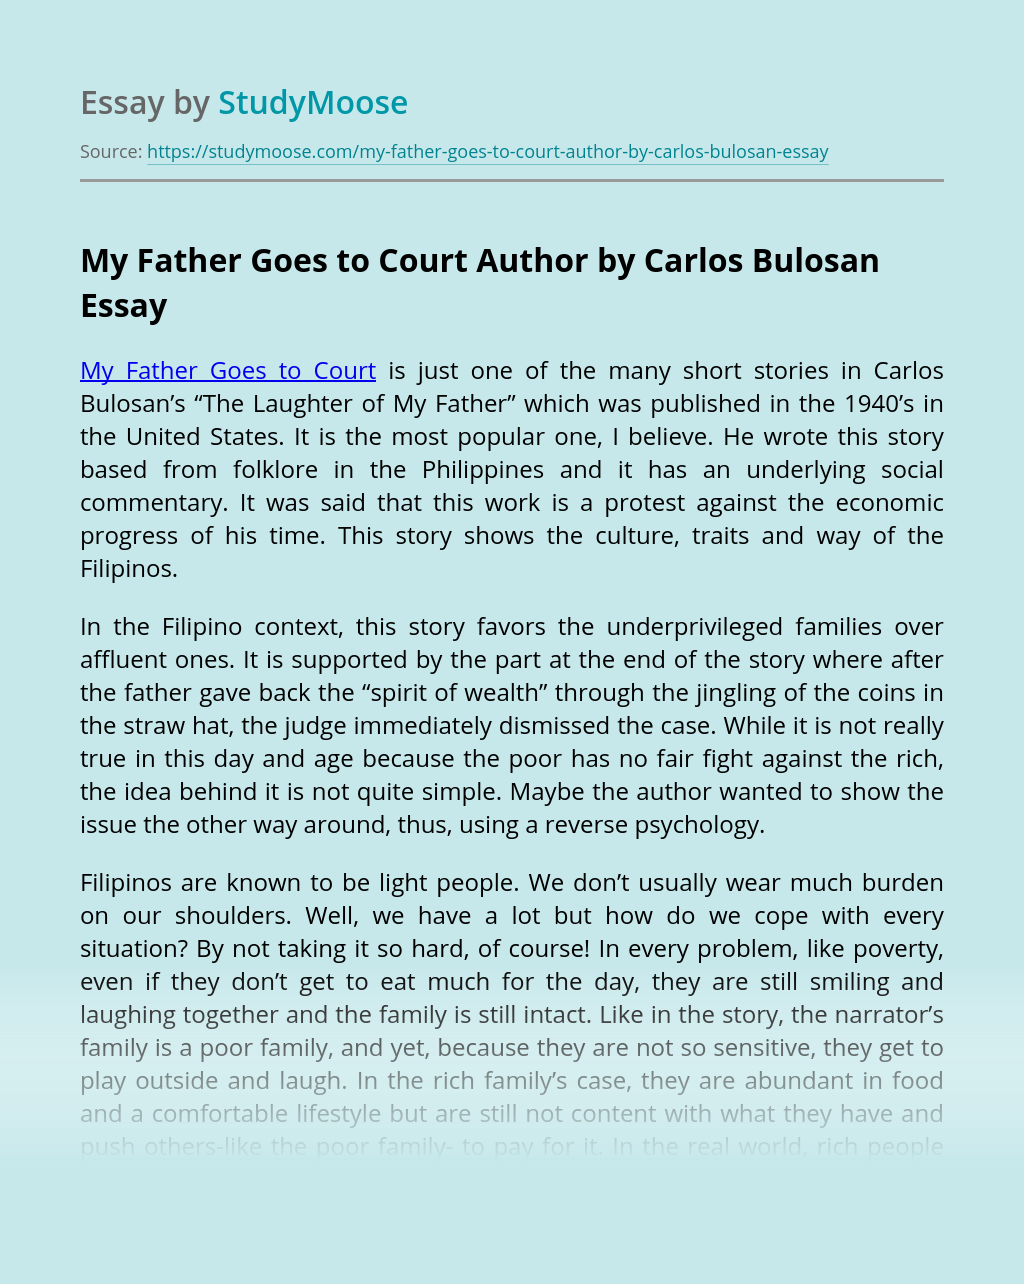 My Father Goes to Court Author by Carlos Bulosan